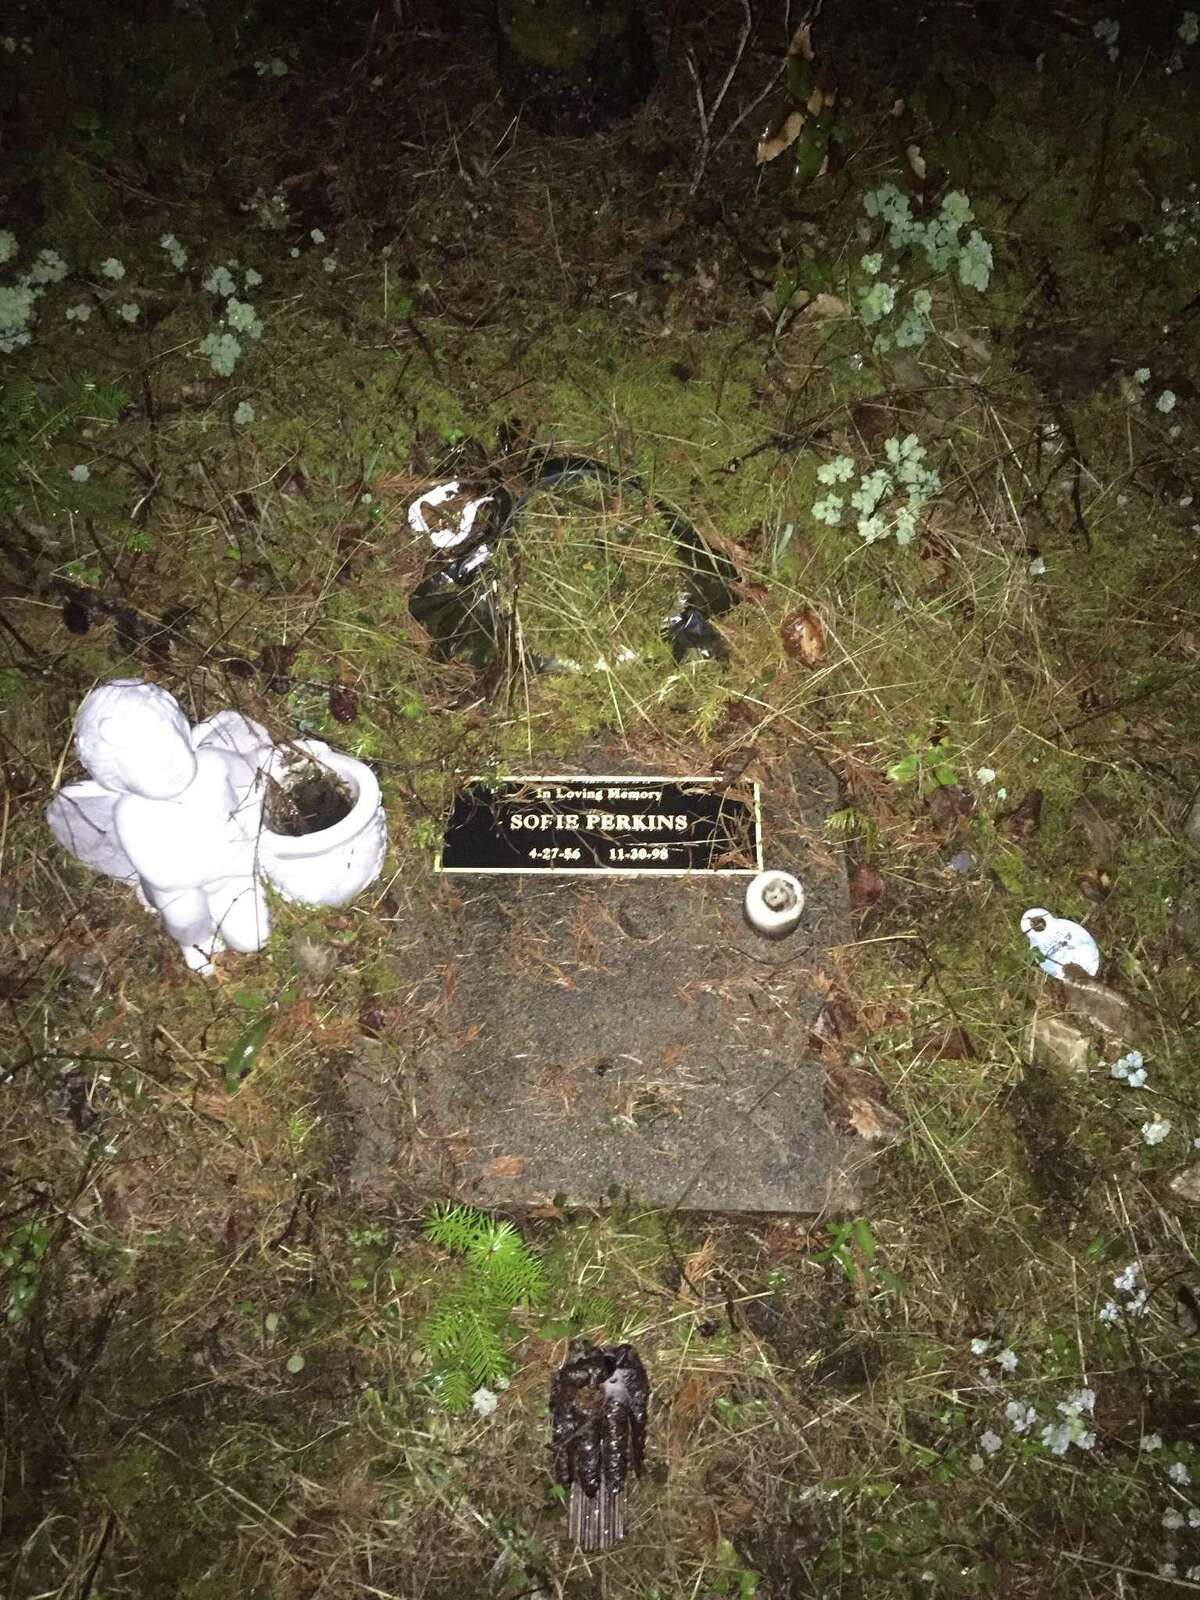 Until recently, the remains of Sophie Perkins were marked by a plaque under a tree in Washington.